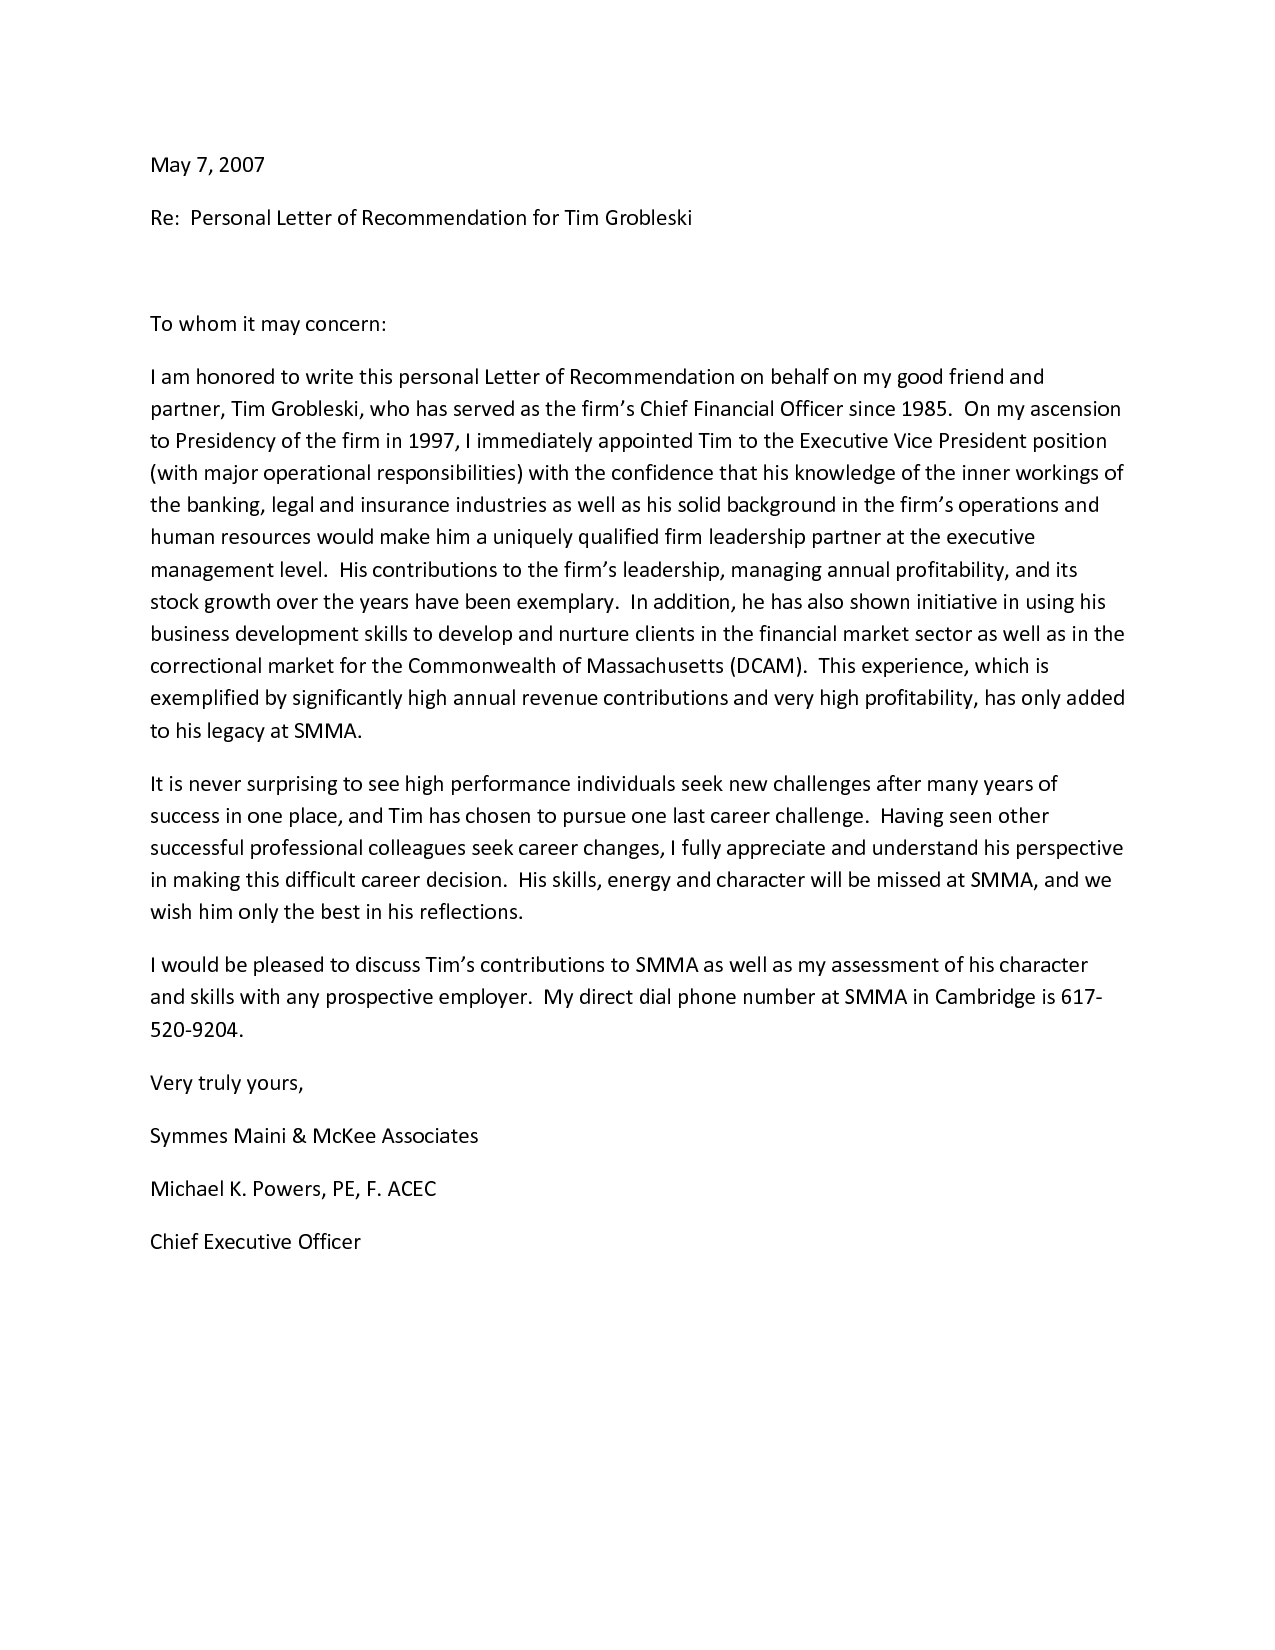 Recommendation Letter For A Friend Template SeeabruzzoPersonal